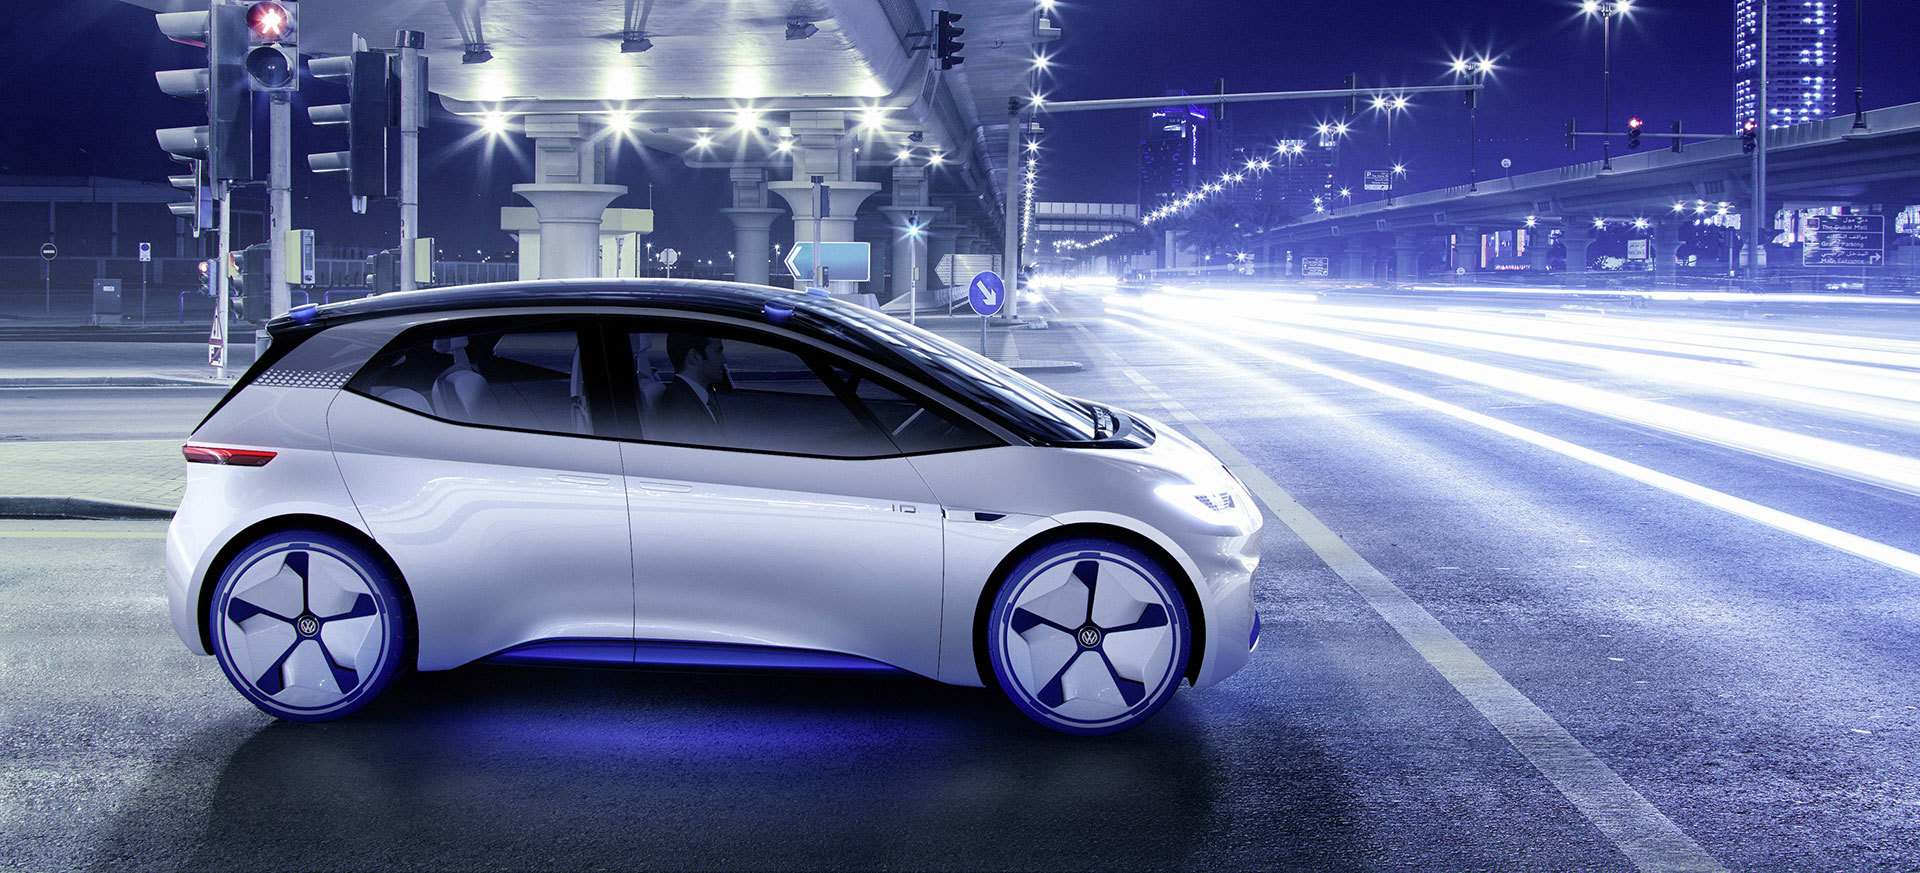 Volkswagen Id Coches Electricos Ford Acuerdo 01